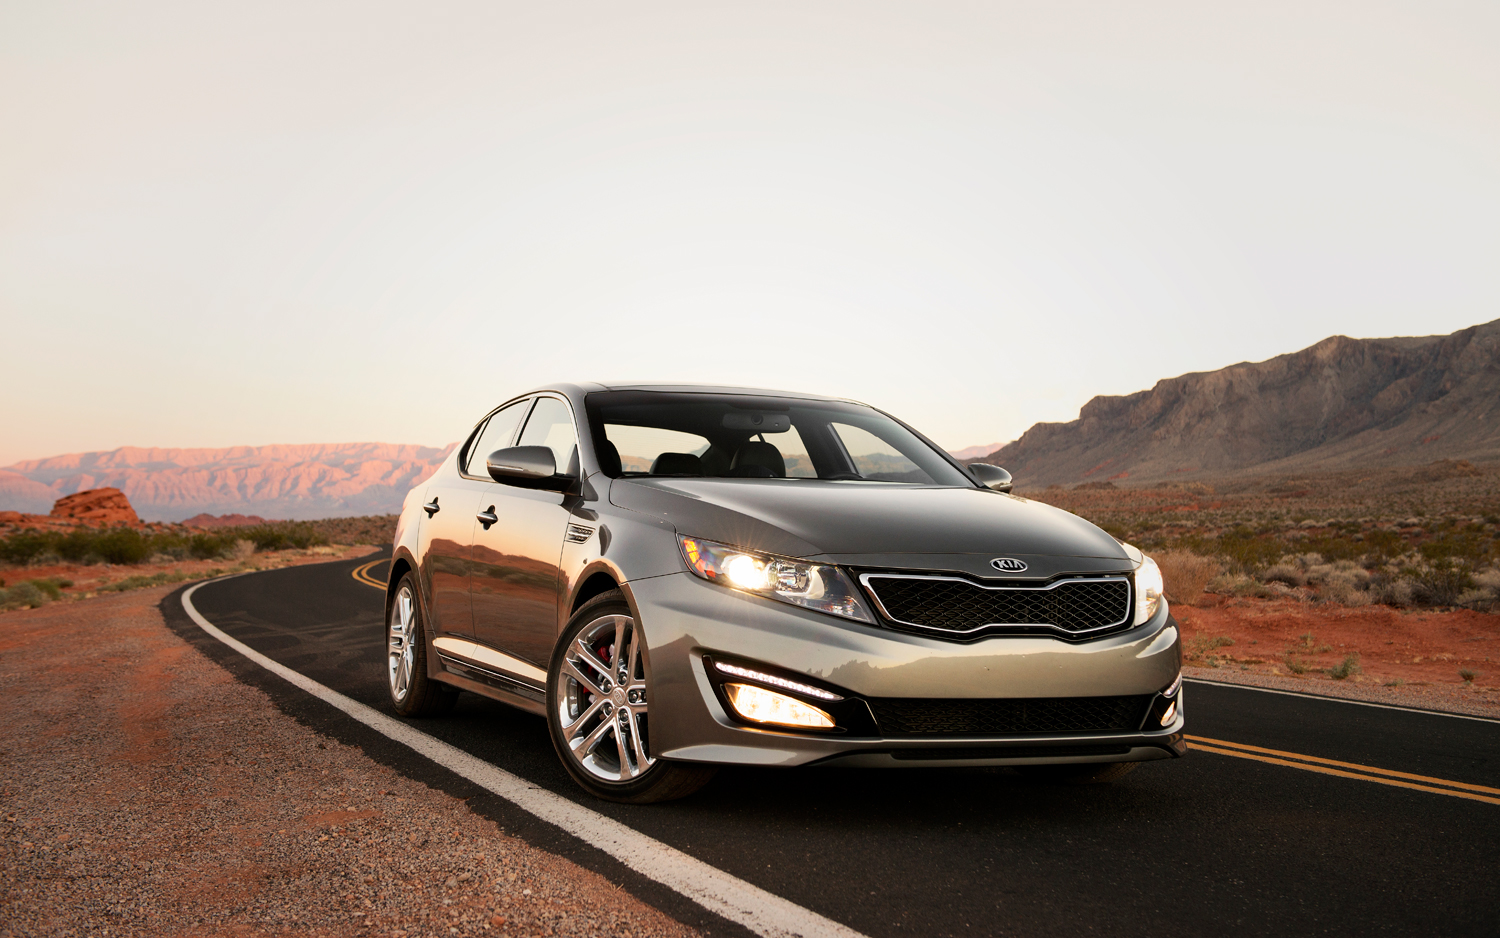 Attractive 2013 Kia Optima SXL Arrival